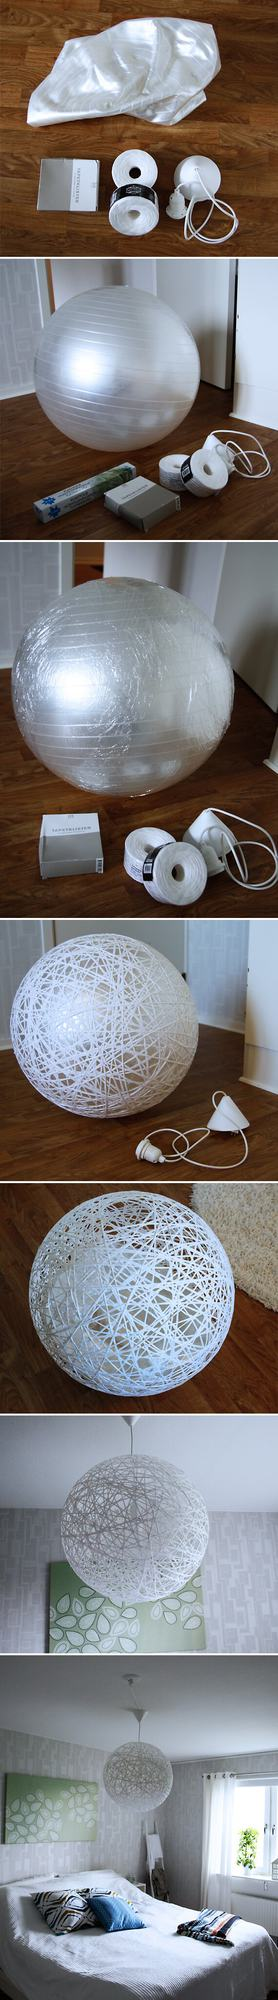 DIY Rope Lamp by Inspire Ramera